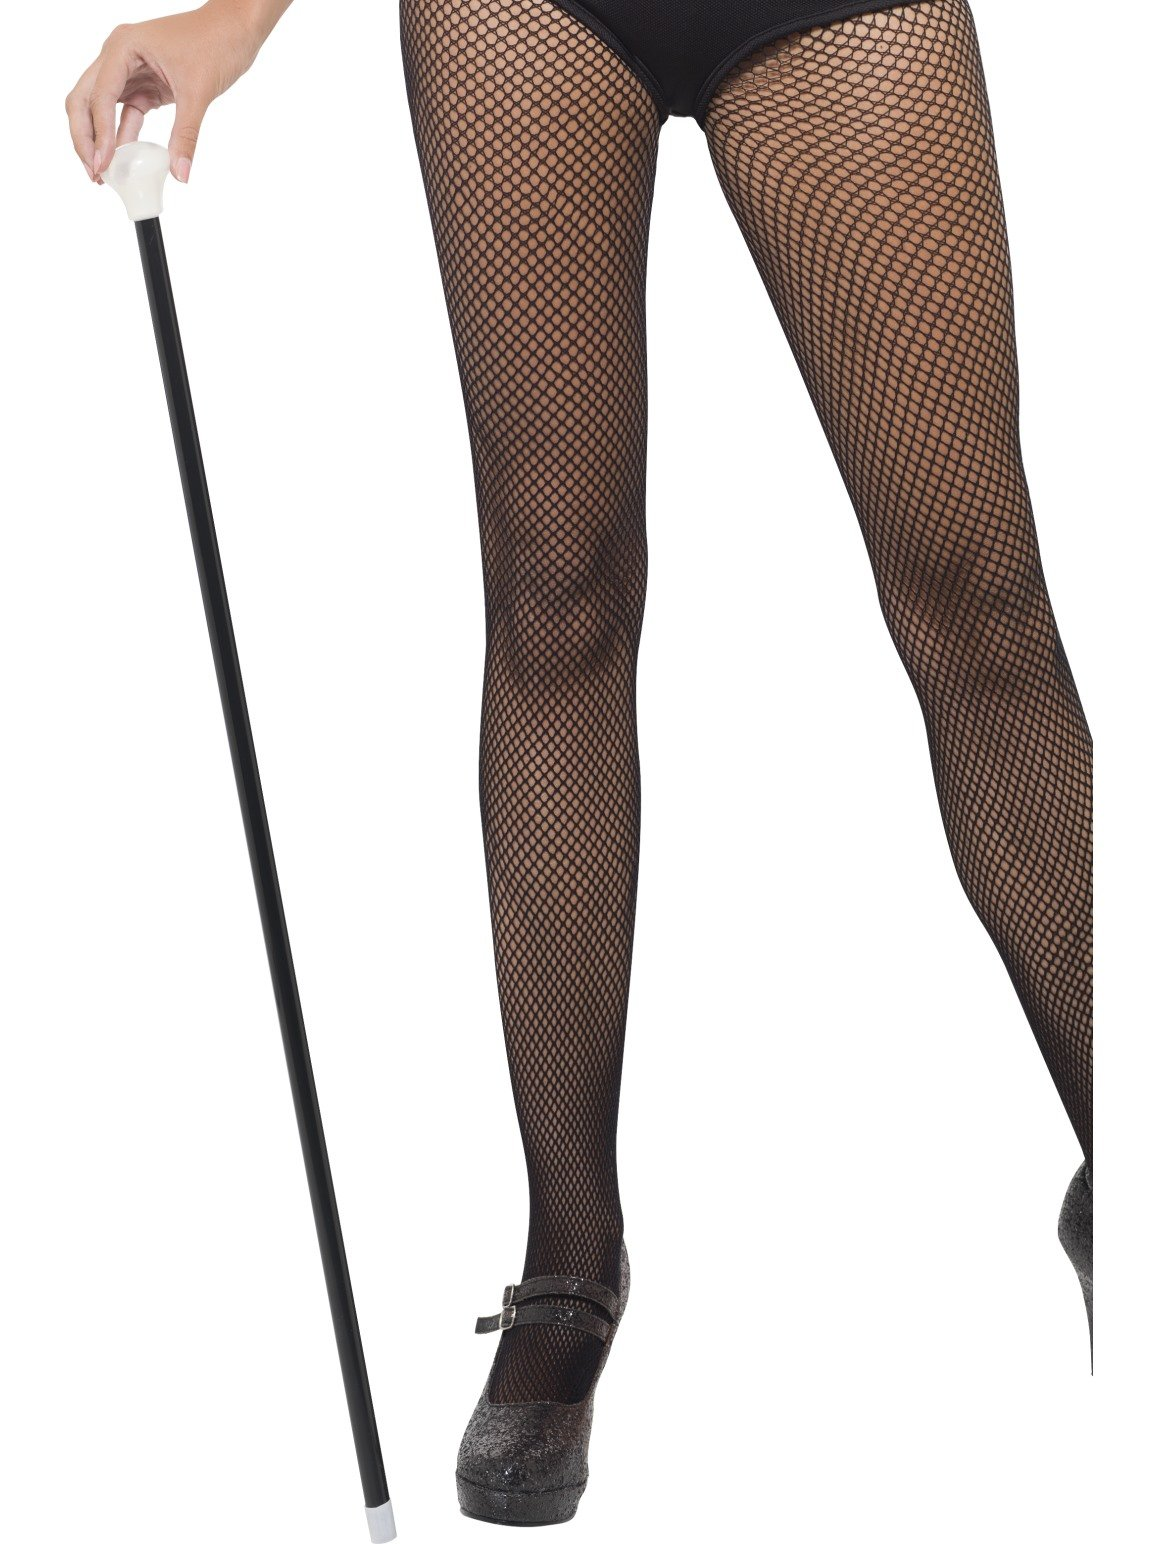 20s Style Dance Cane